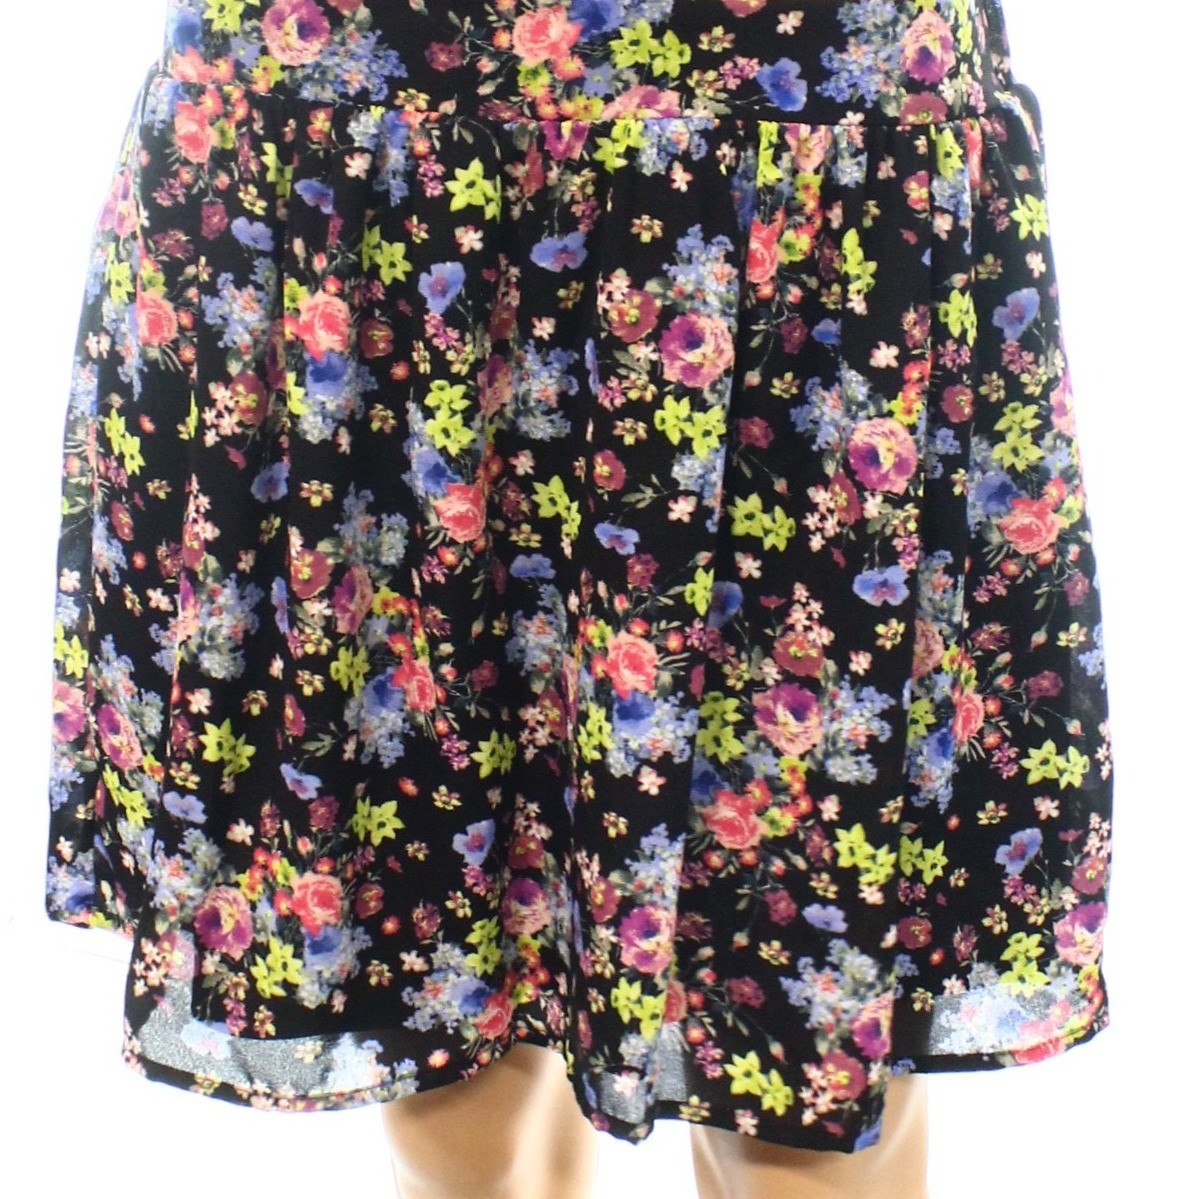 Socialite NEW Black Women's Size Large L Mini Gathered Floral-Printed Skirt